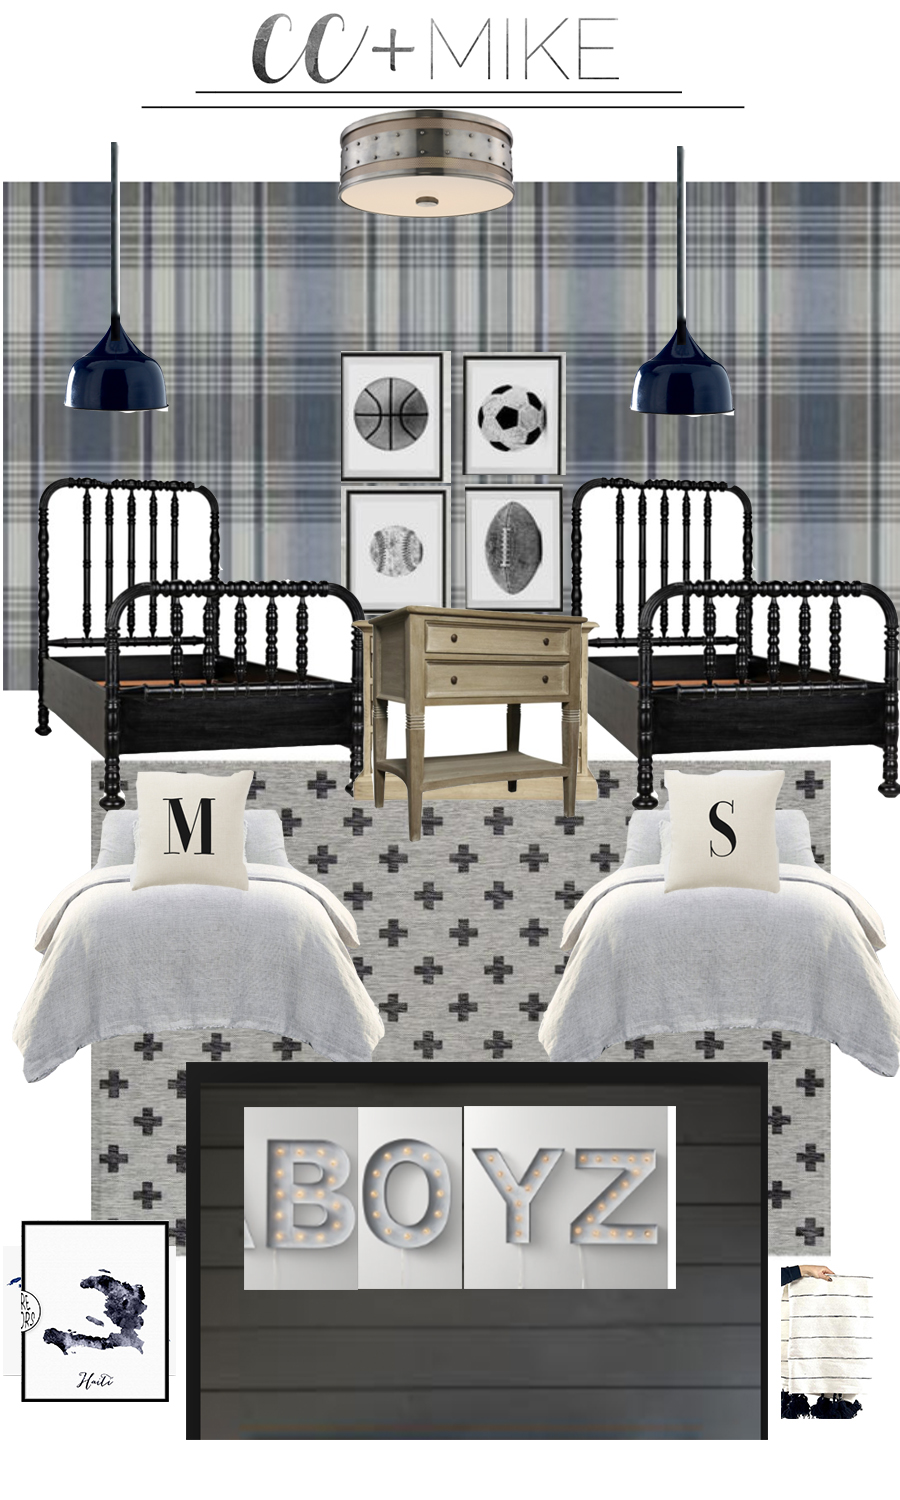 5 Tips for Boys Bedroom Design black Jenny Lind bed reclaimed wood bed best boy bedroom design plaid wallpaper black Jenny Lind bed Swiss army check rug